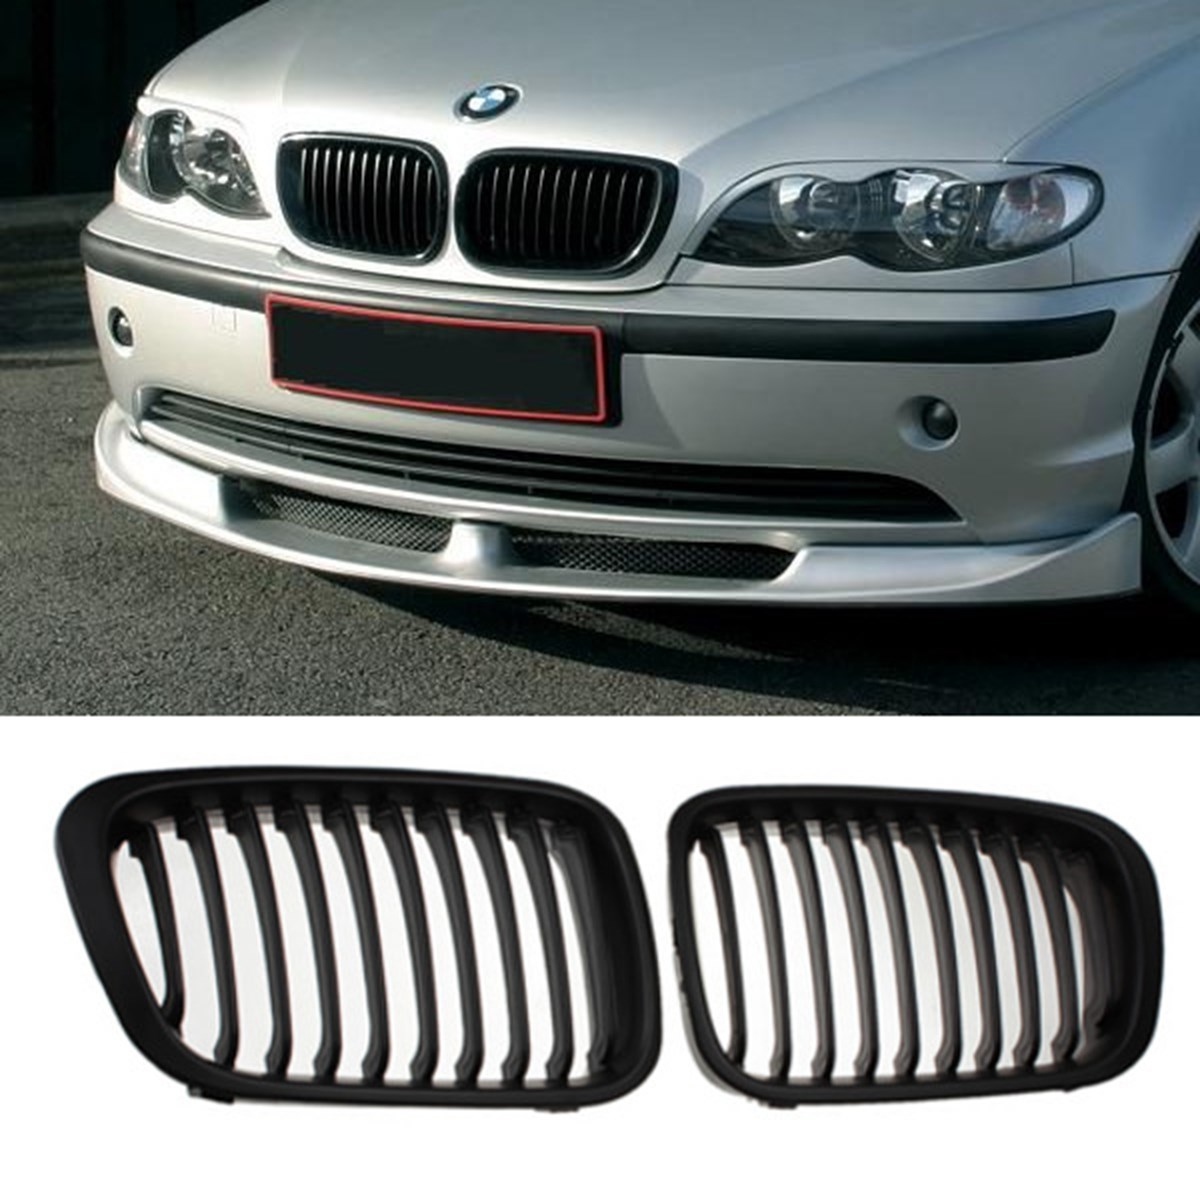 MATTE BLACK GRILLE GRILL for BMW E46 1998 2001 4 DOOR 320i 323i 325i 328i 330i